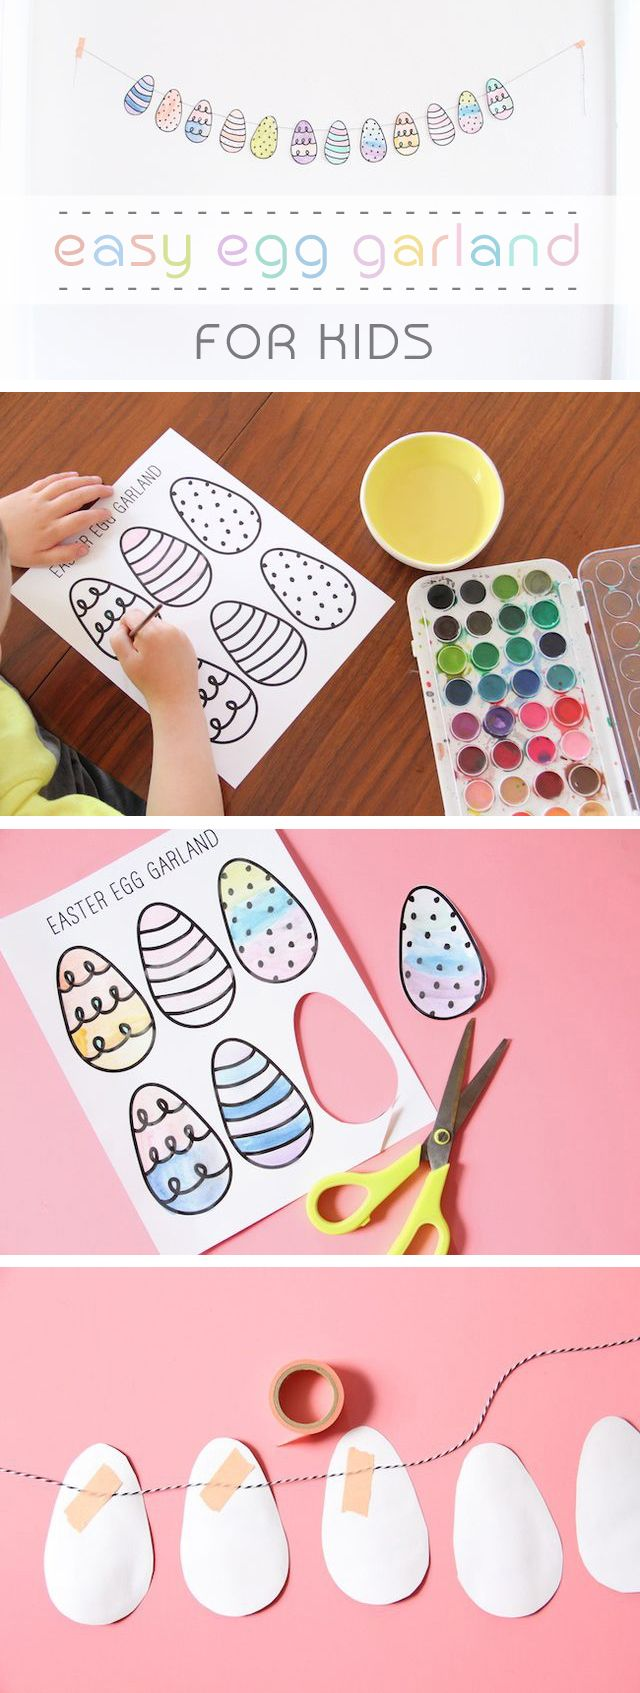 Printable, coloring eggs are included! A great Easter crafts for kids that you can also decorate the house with. You might want to join in on the coloring fun, we definitely do! Find the free printable template here: http://www.ehow.com/info_12340445_easy-diy-egg-garland-kids-make.html?utm_source=pinterest.com&utm_medium=referral&utm_content=inline&utm_campaign=fanpage